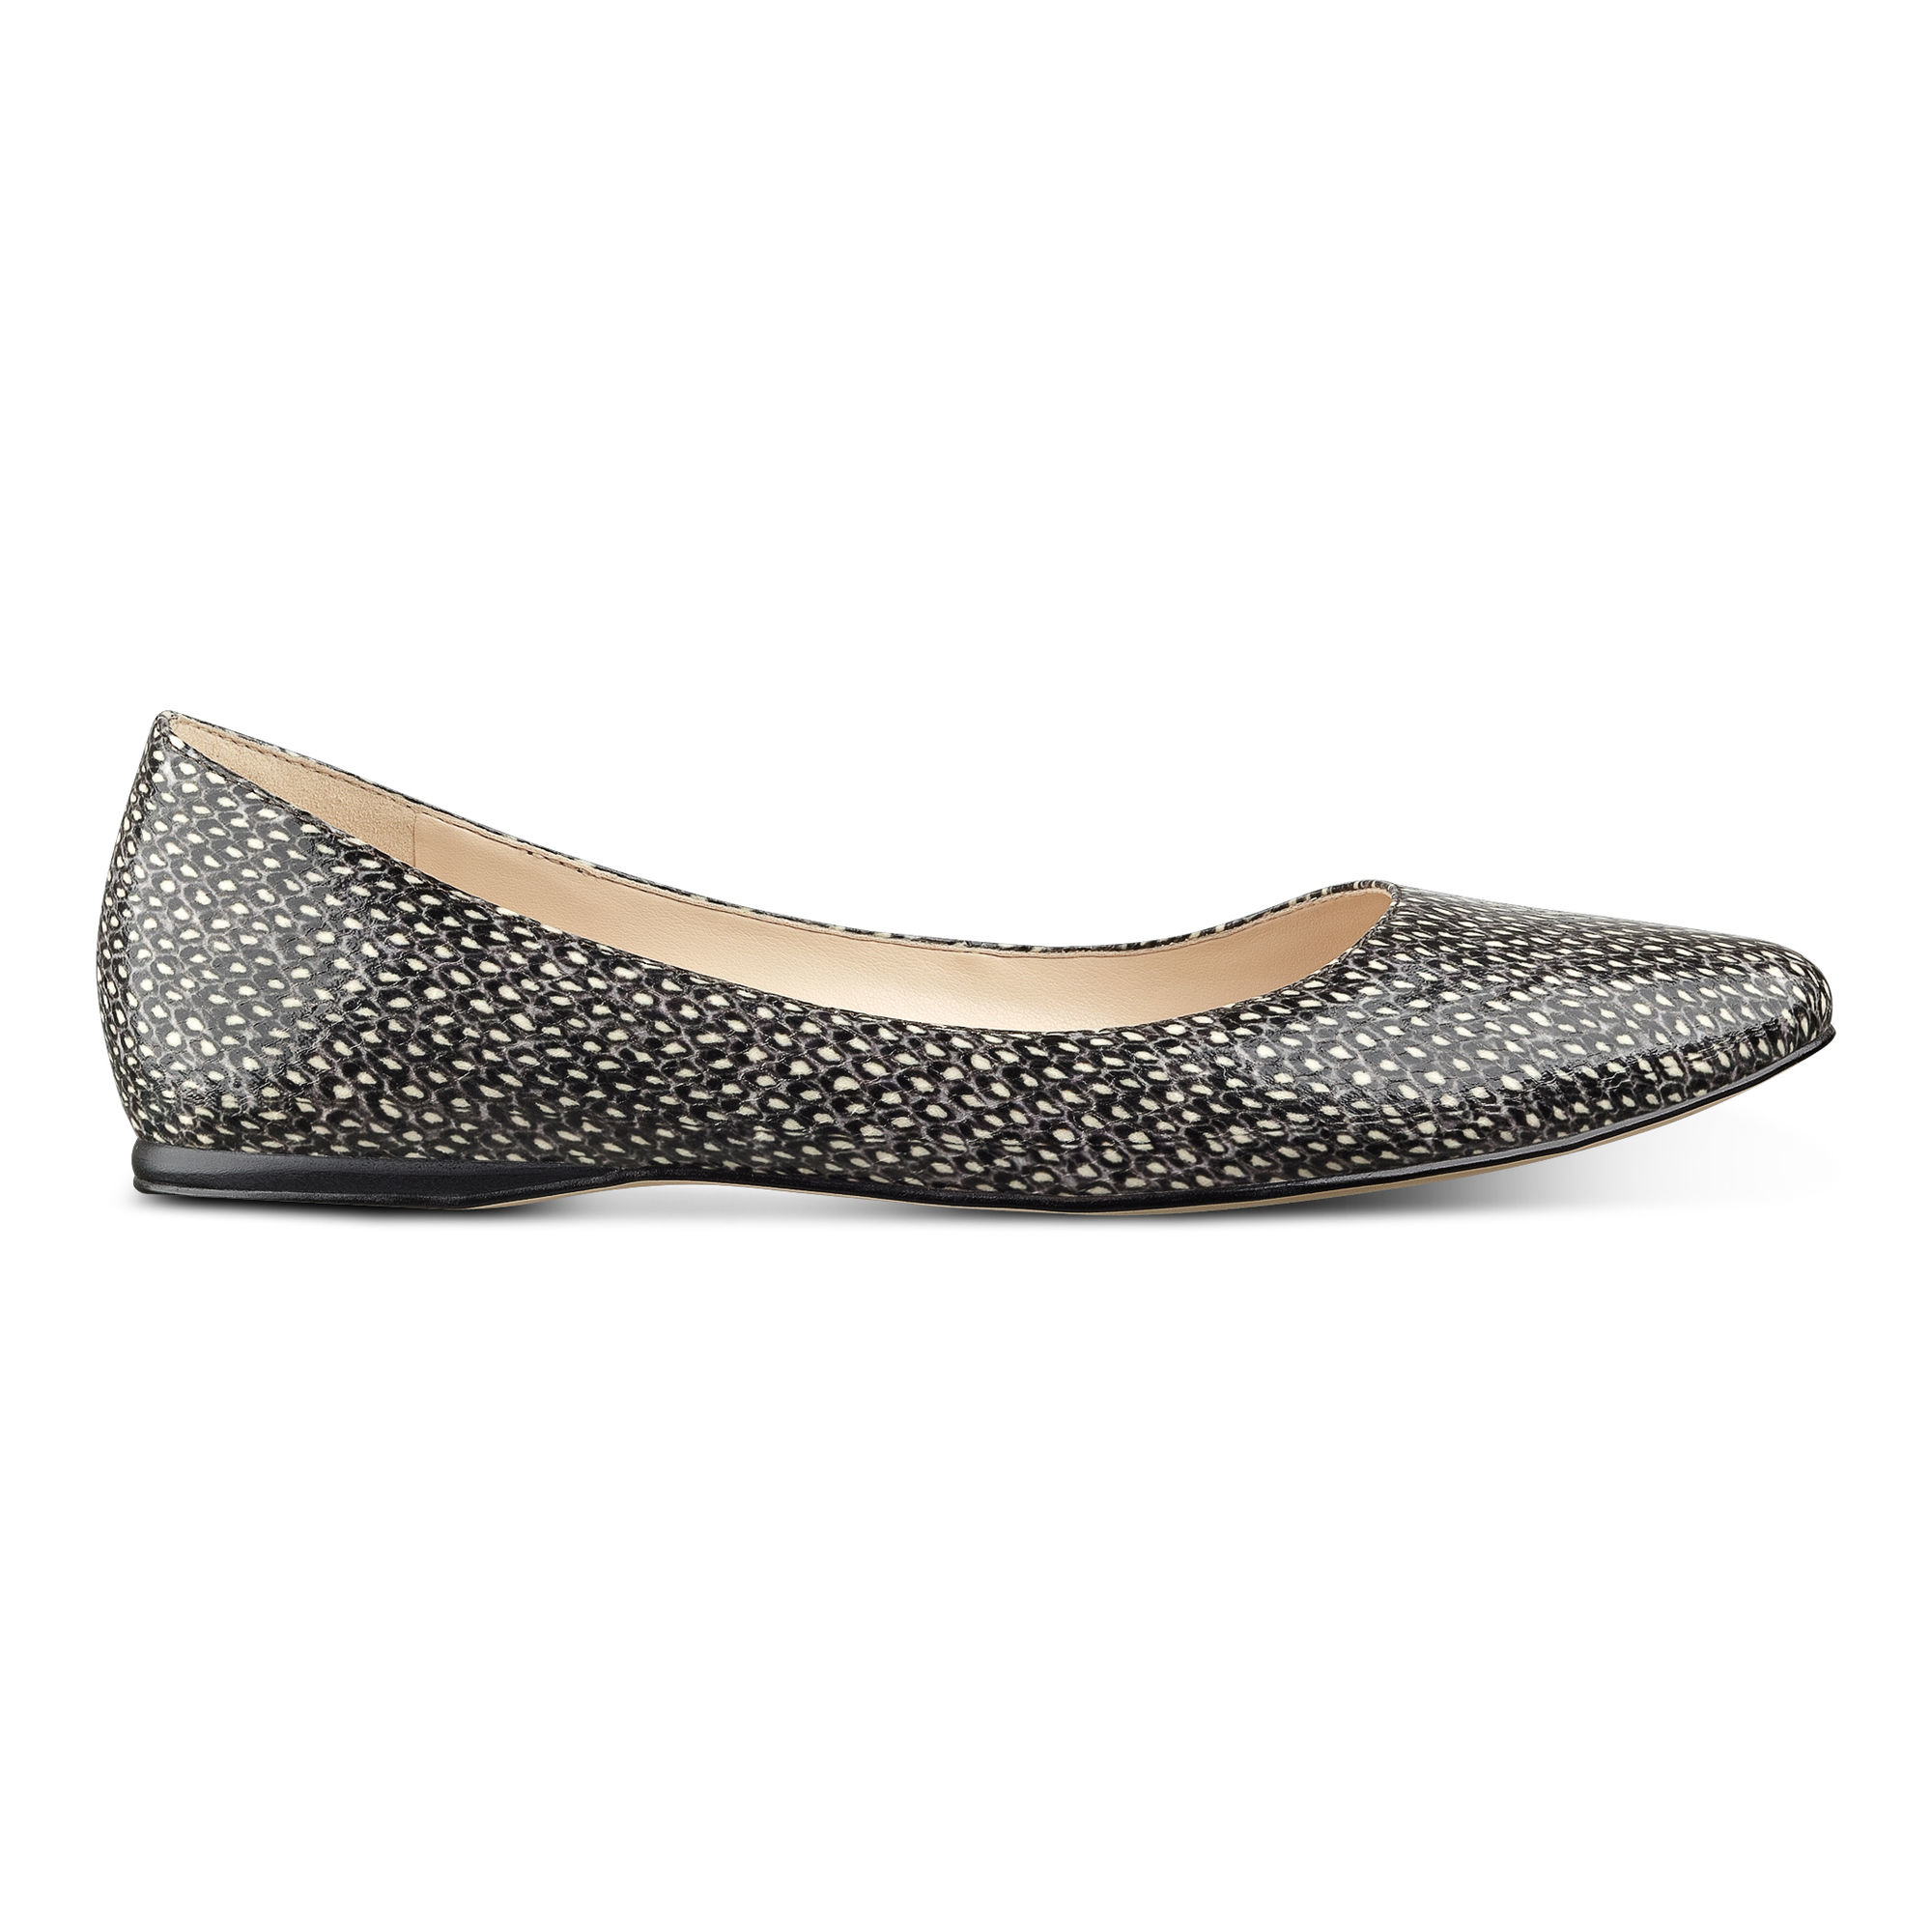 In Pointed Lyst Toe Flats White Nine Speakup West 7q7xwY8PB